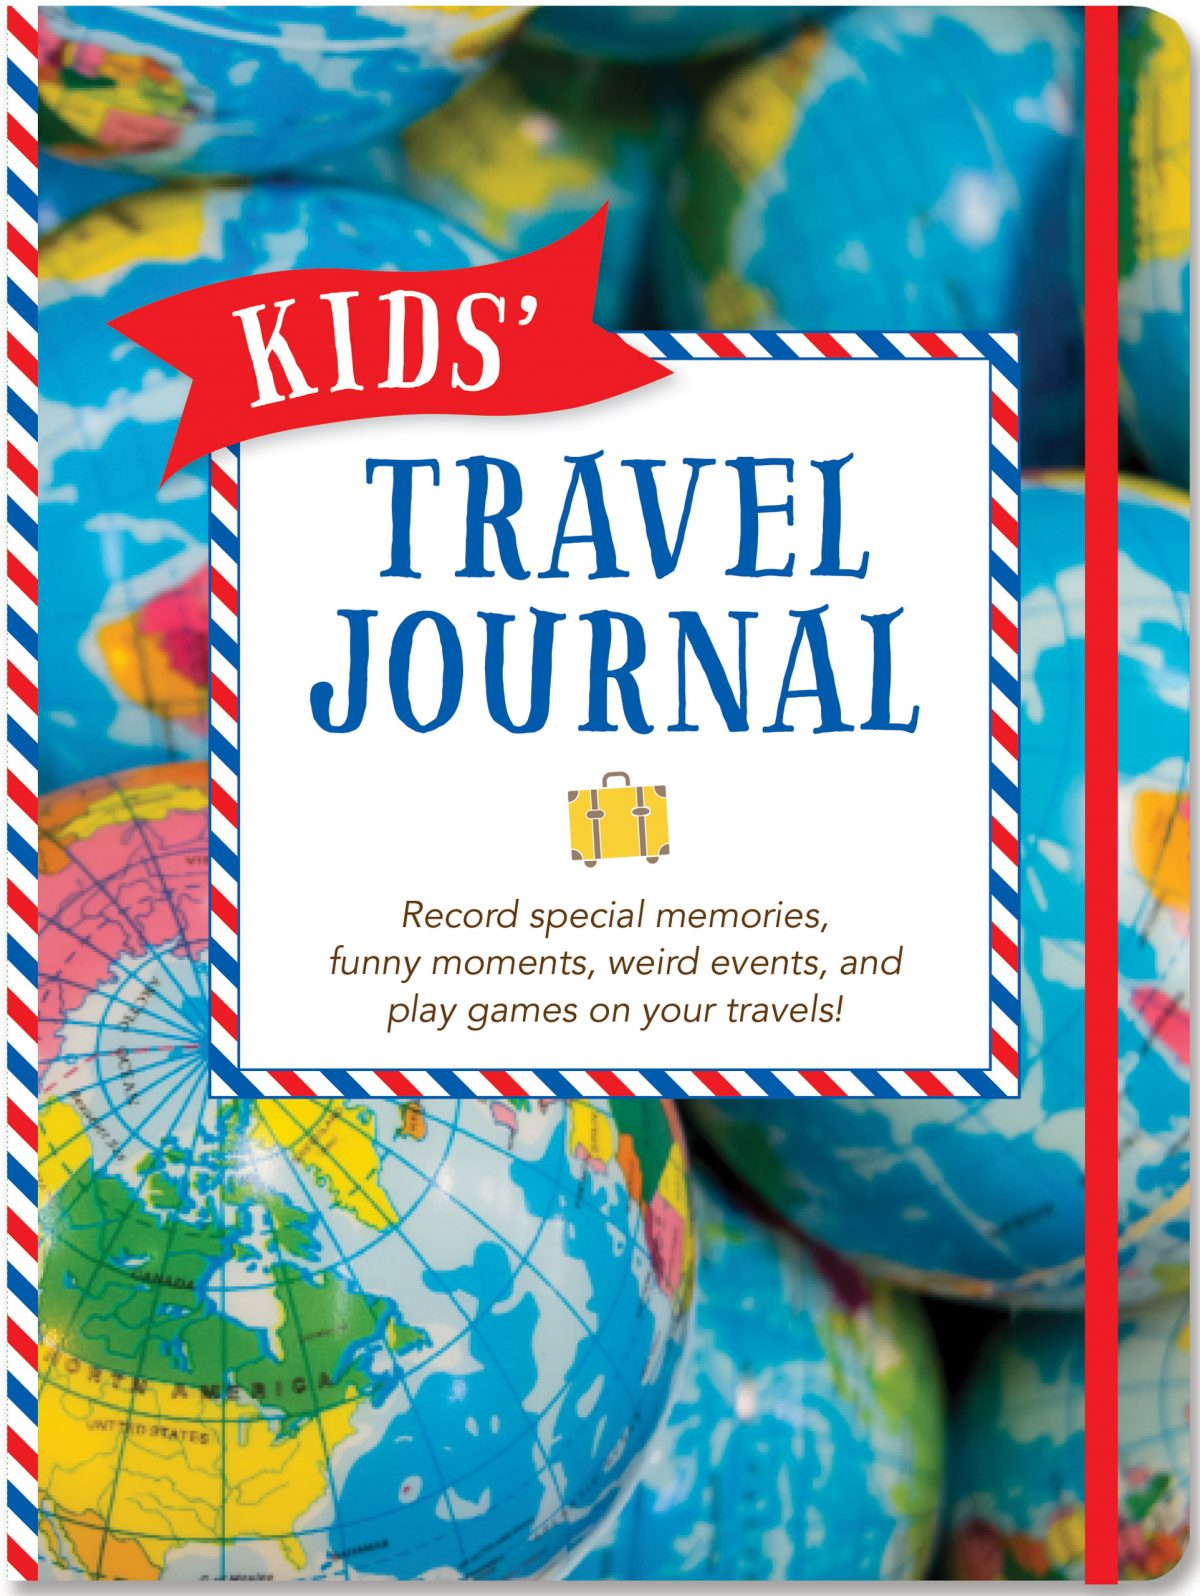 Kids' Travel Journal, Cute Travel Journal, Travel Journal